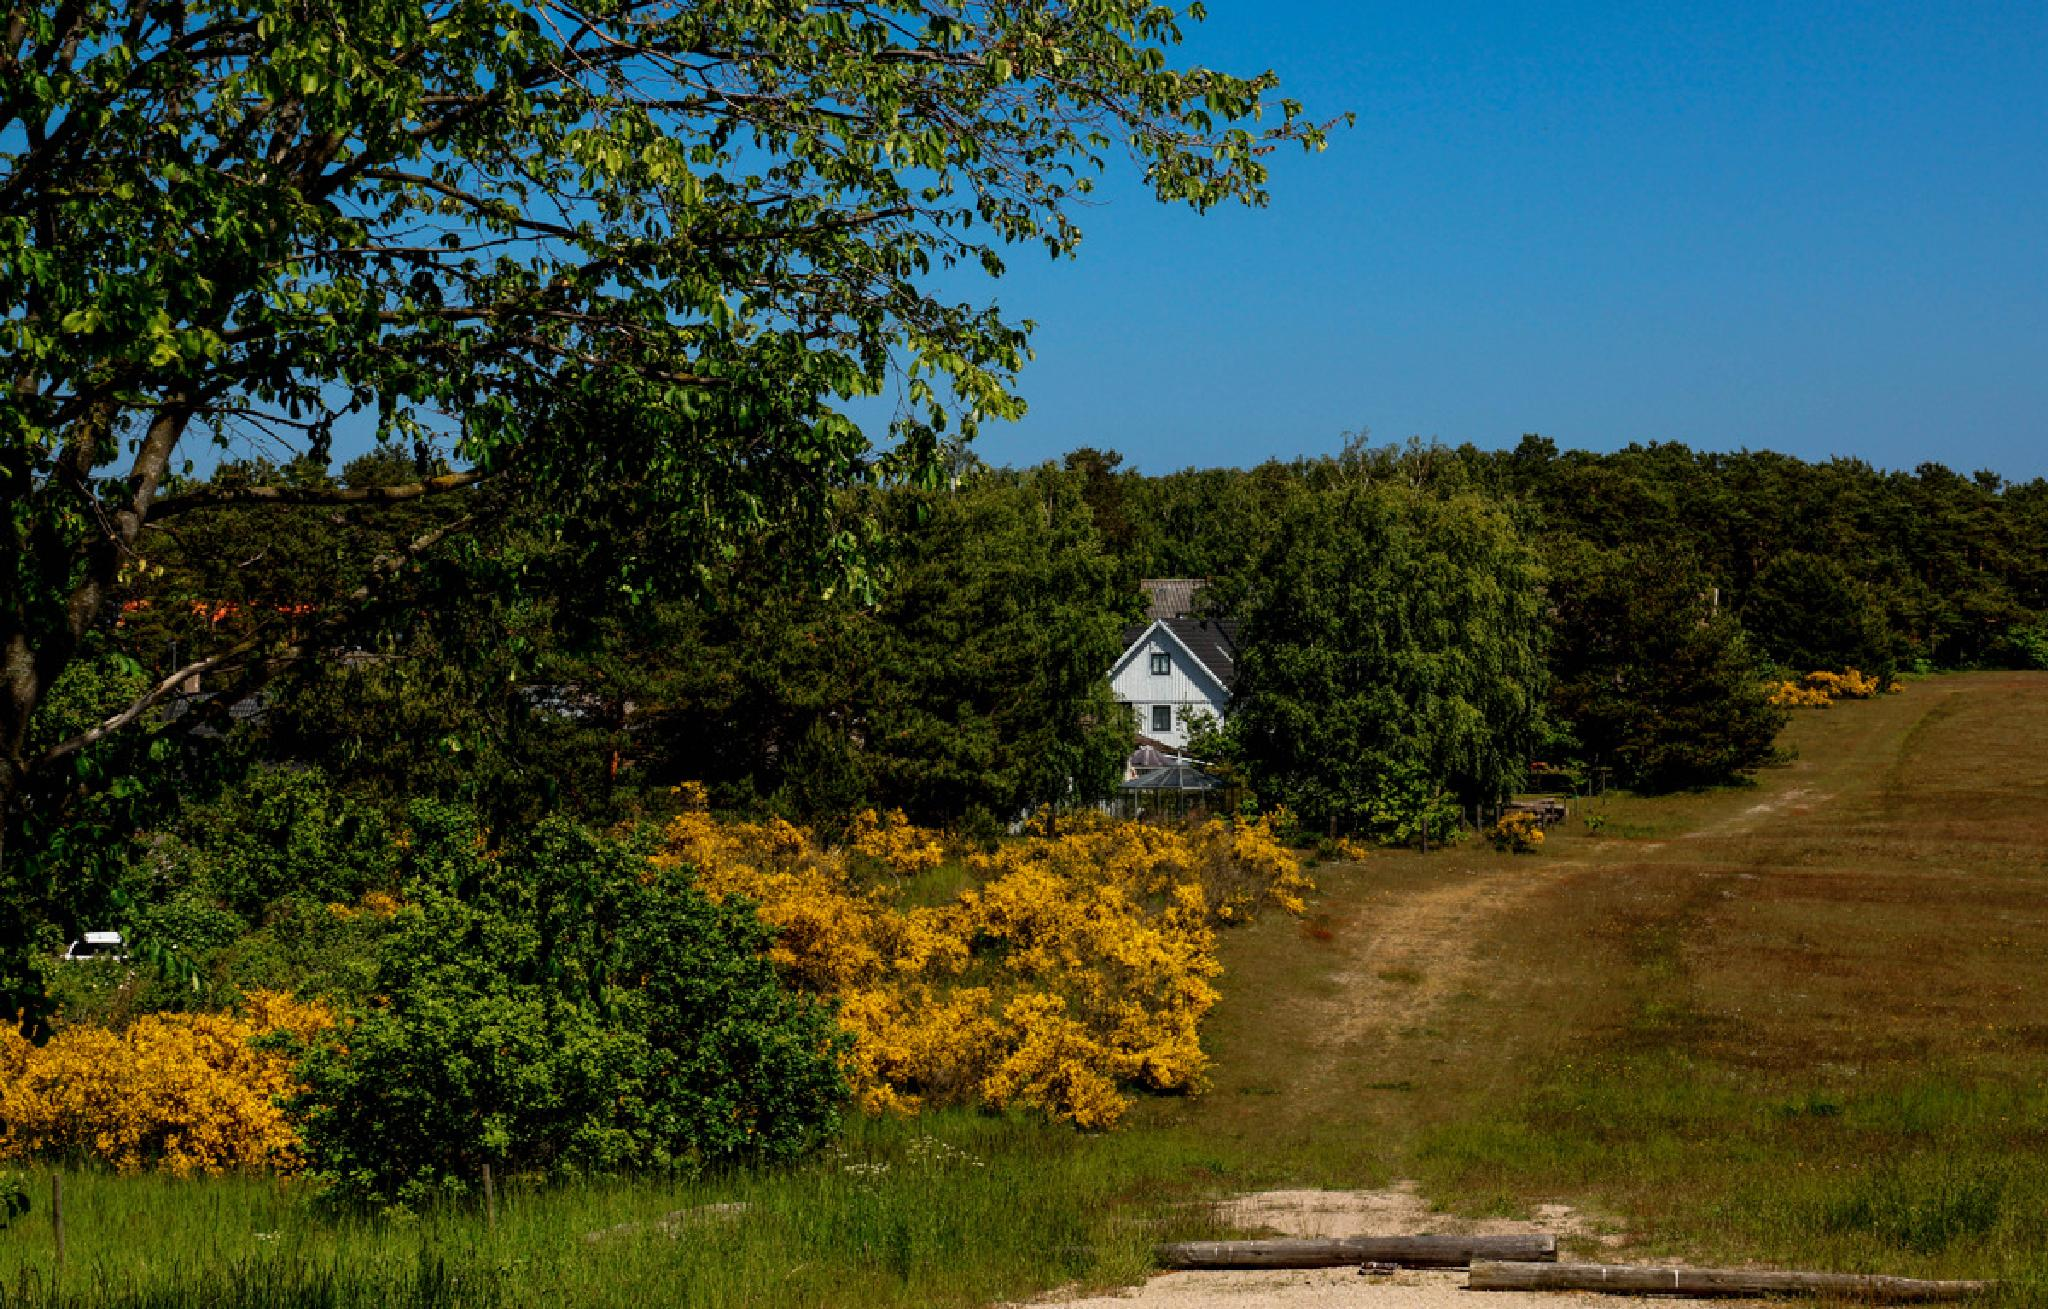 House between the trees by Jane.lindbladh